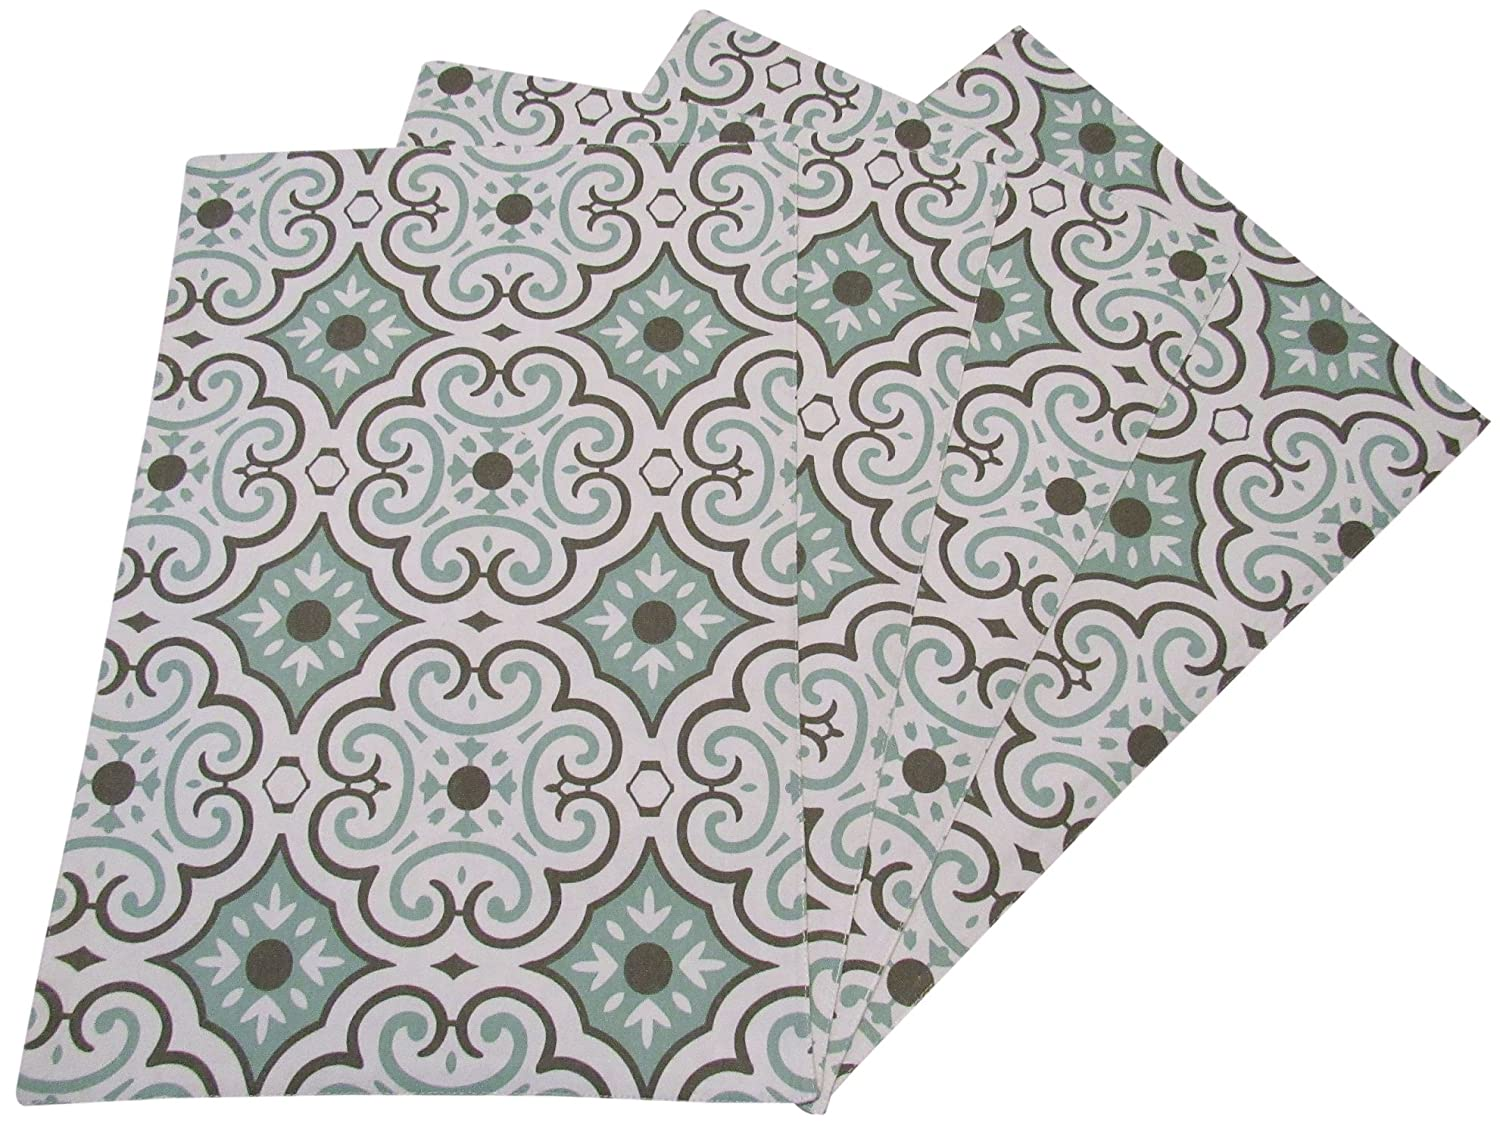 Crabtree Collection Seafoam Tile Table Placemat Set by The Top 4-Pack Place Mats from 100% Cotton  Fresh, Trendy Design & Eye-Catching Colors  Dining Table Accessory for Home, Restaurant, Café